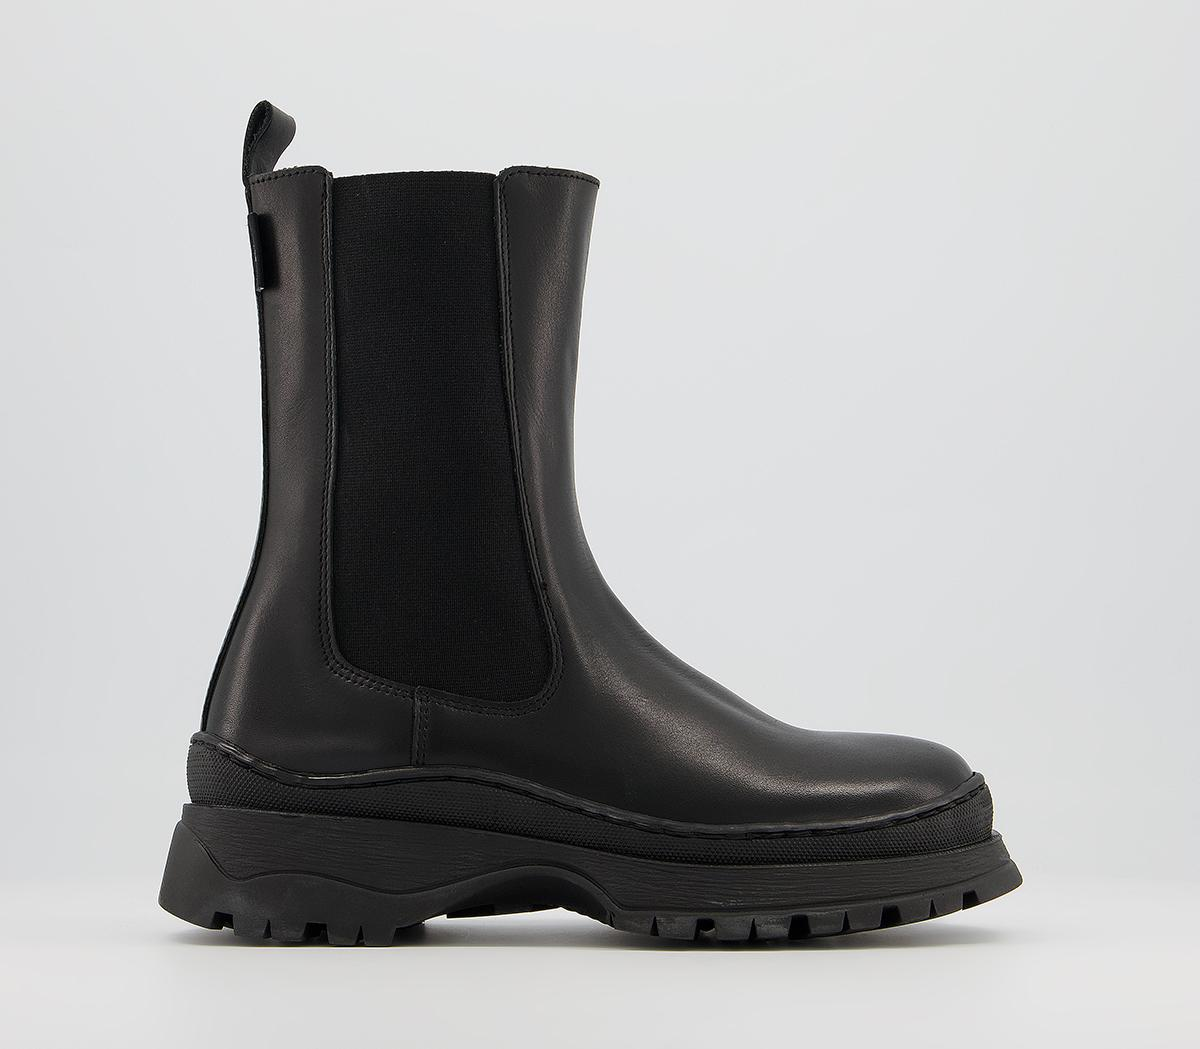 Lilanna High Chelsea Boots